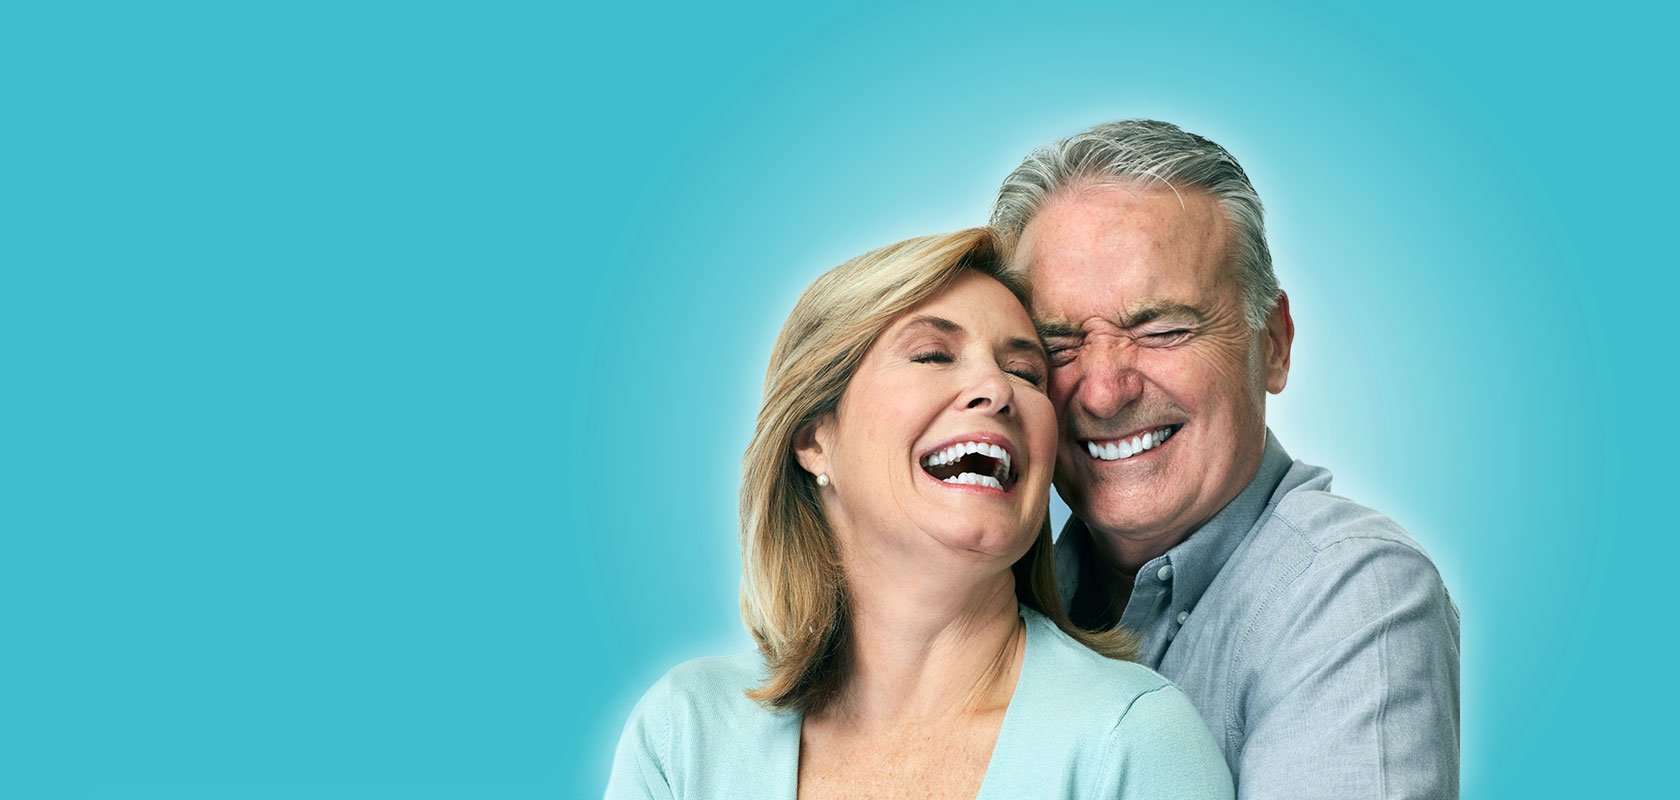 dental implant smiles